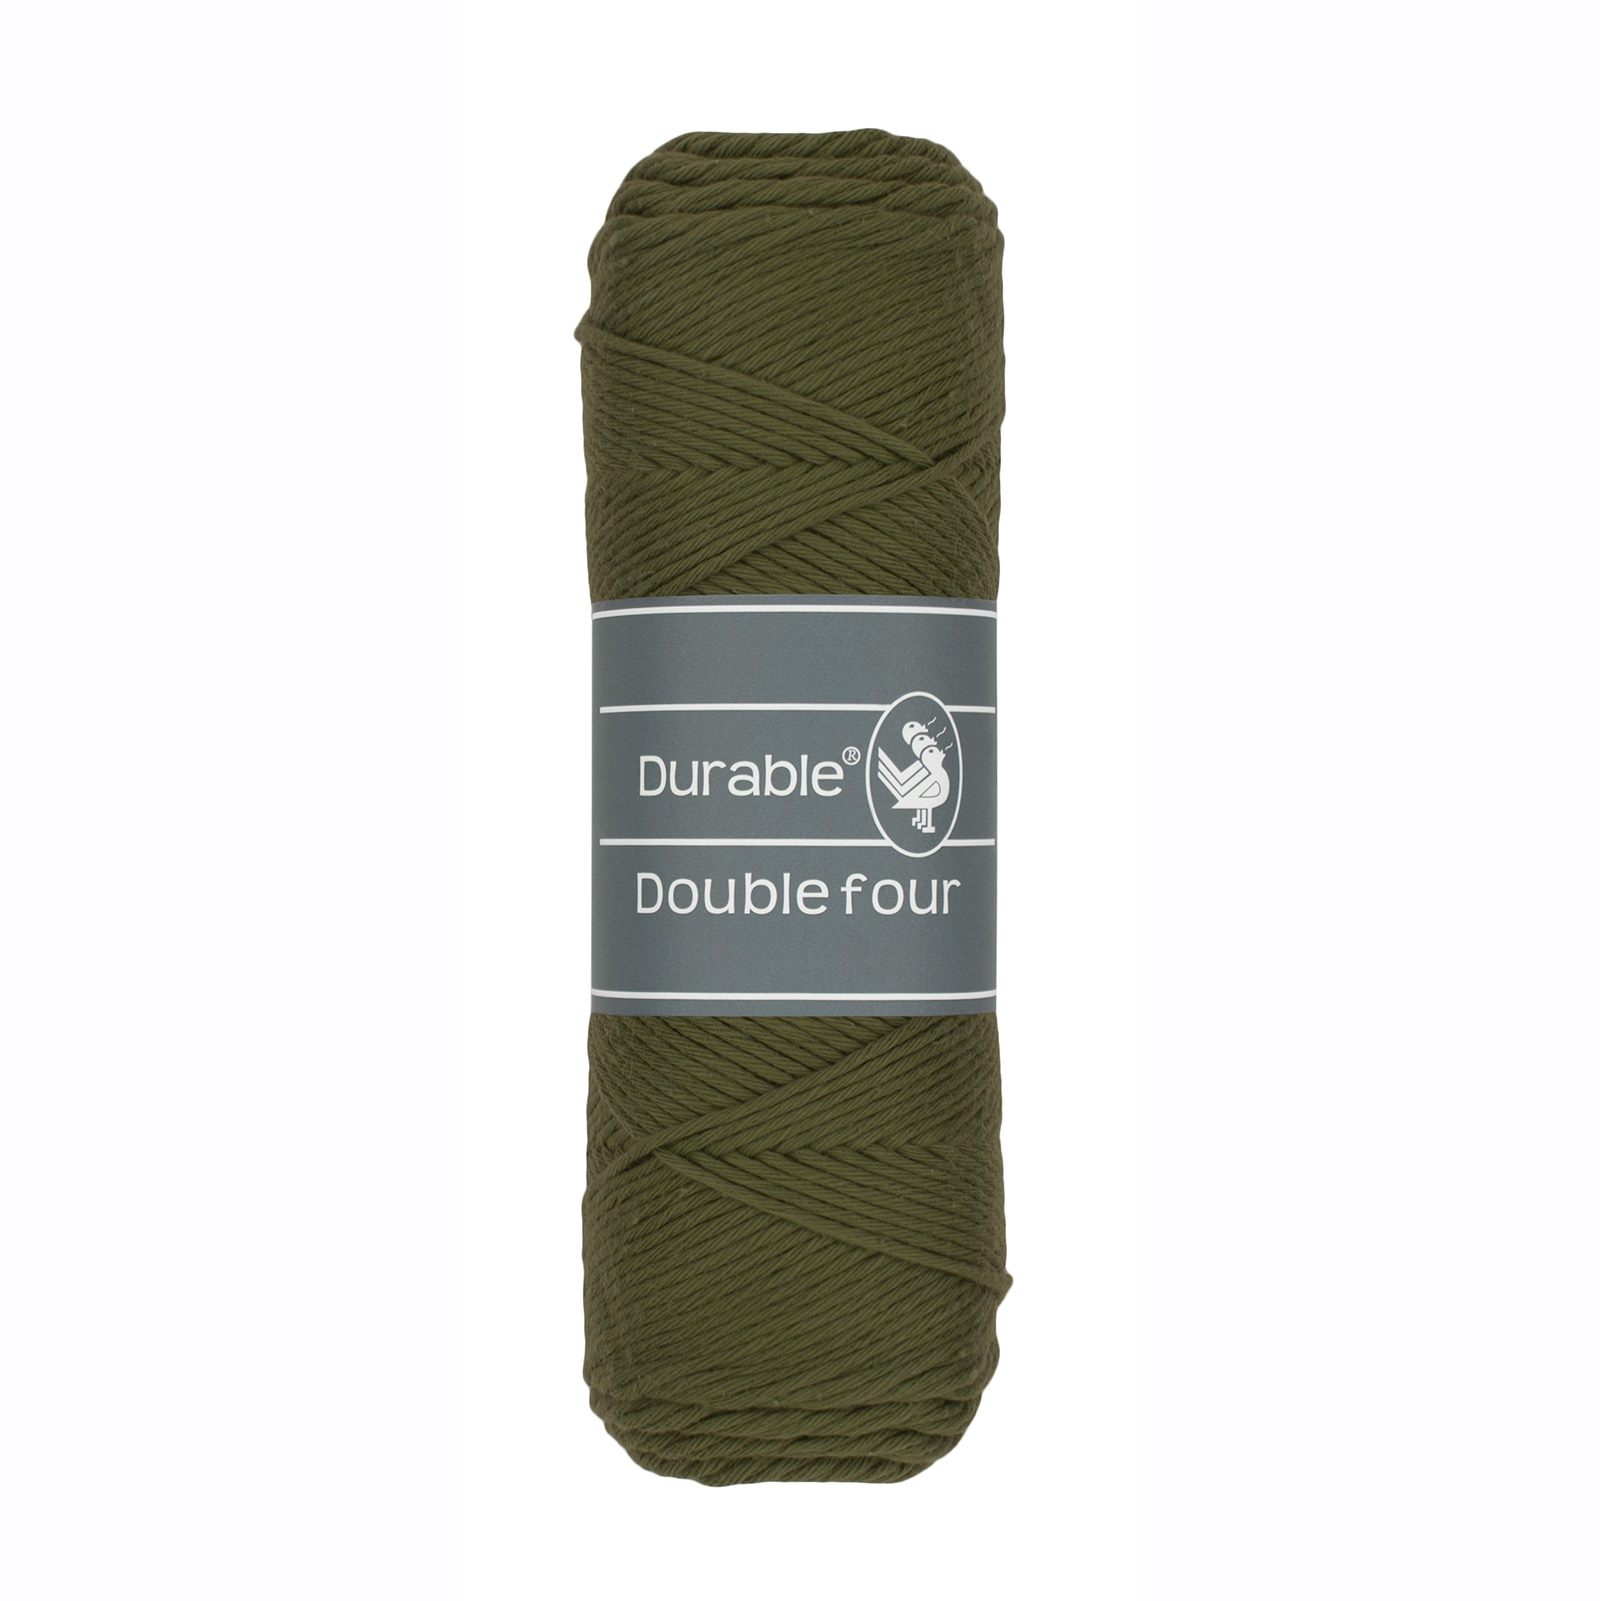 Double Four – 2149 Dark Olive